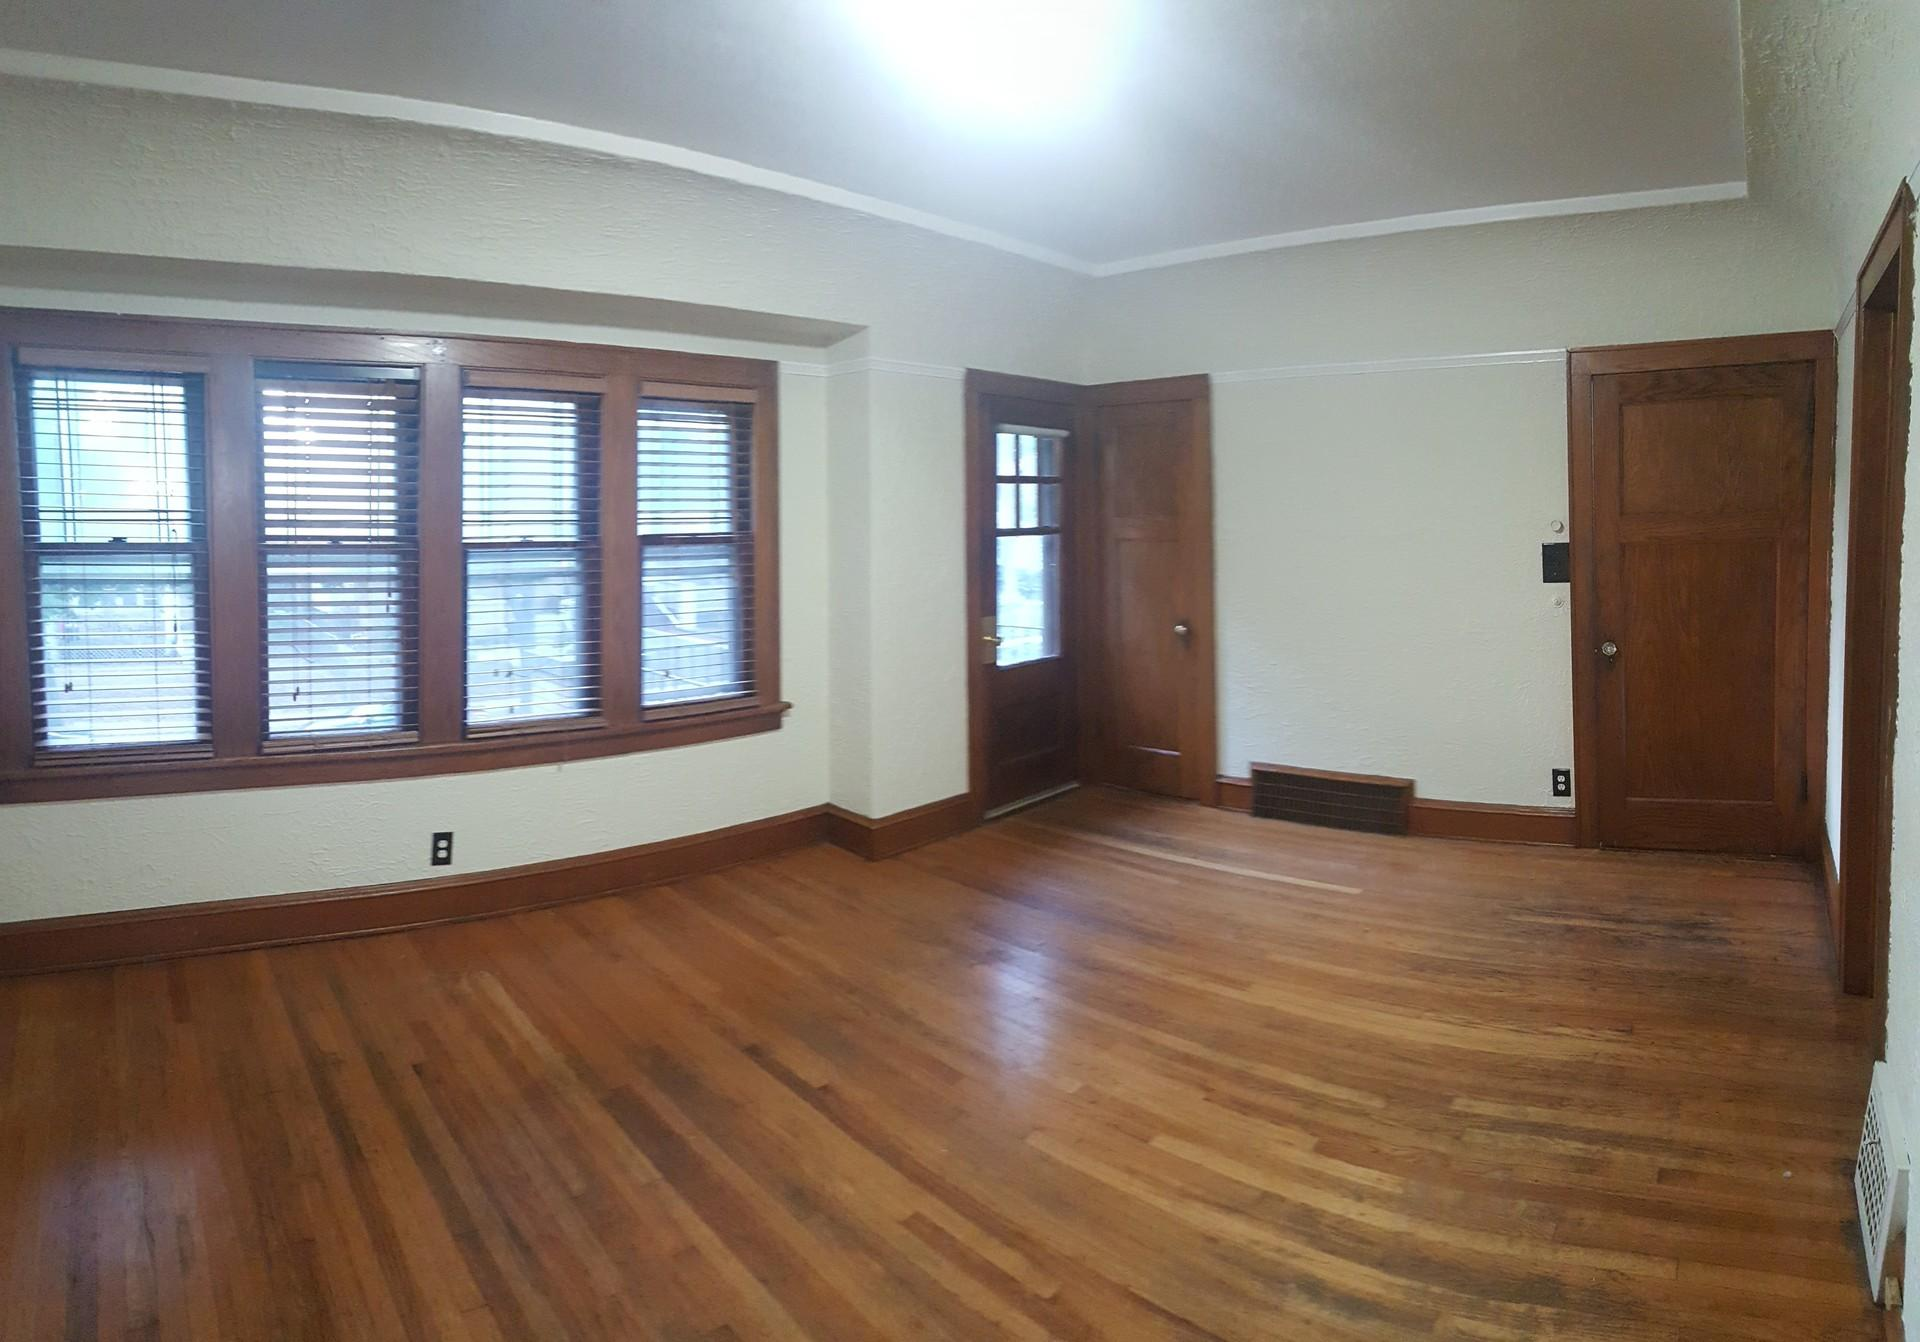 2752 N. 53rd St. - Large and Affordable 3 Bedroom Upper Near St. Joe's